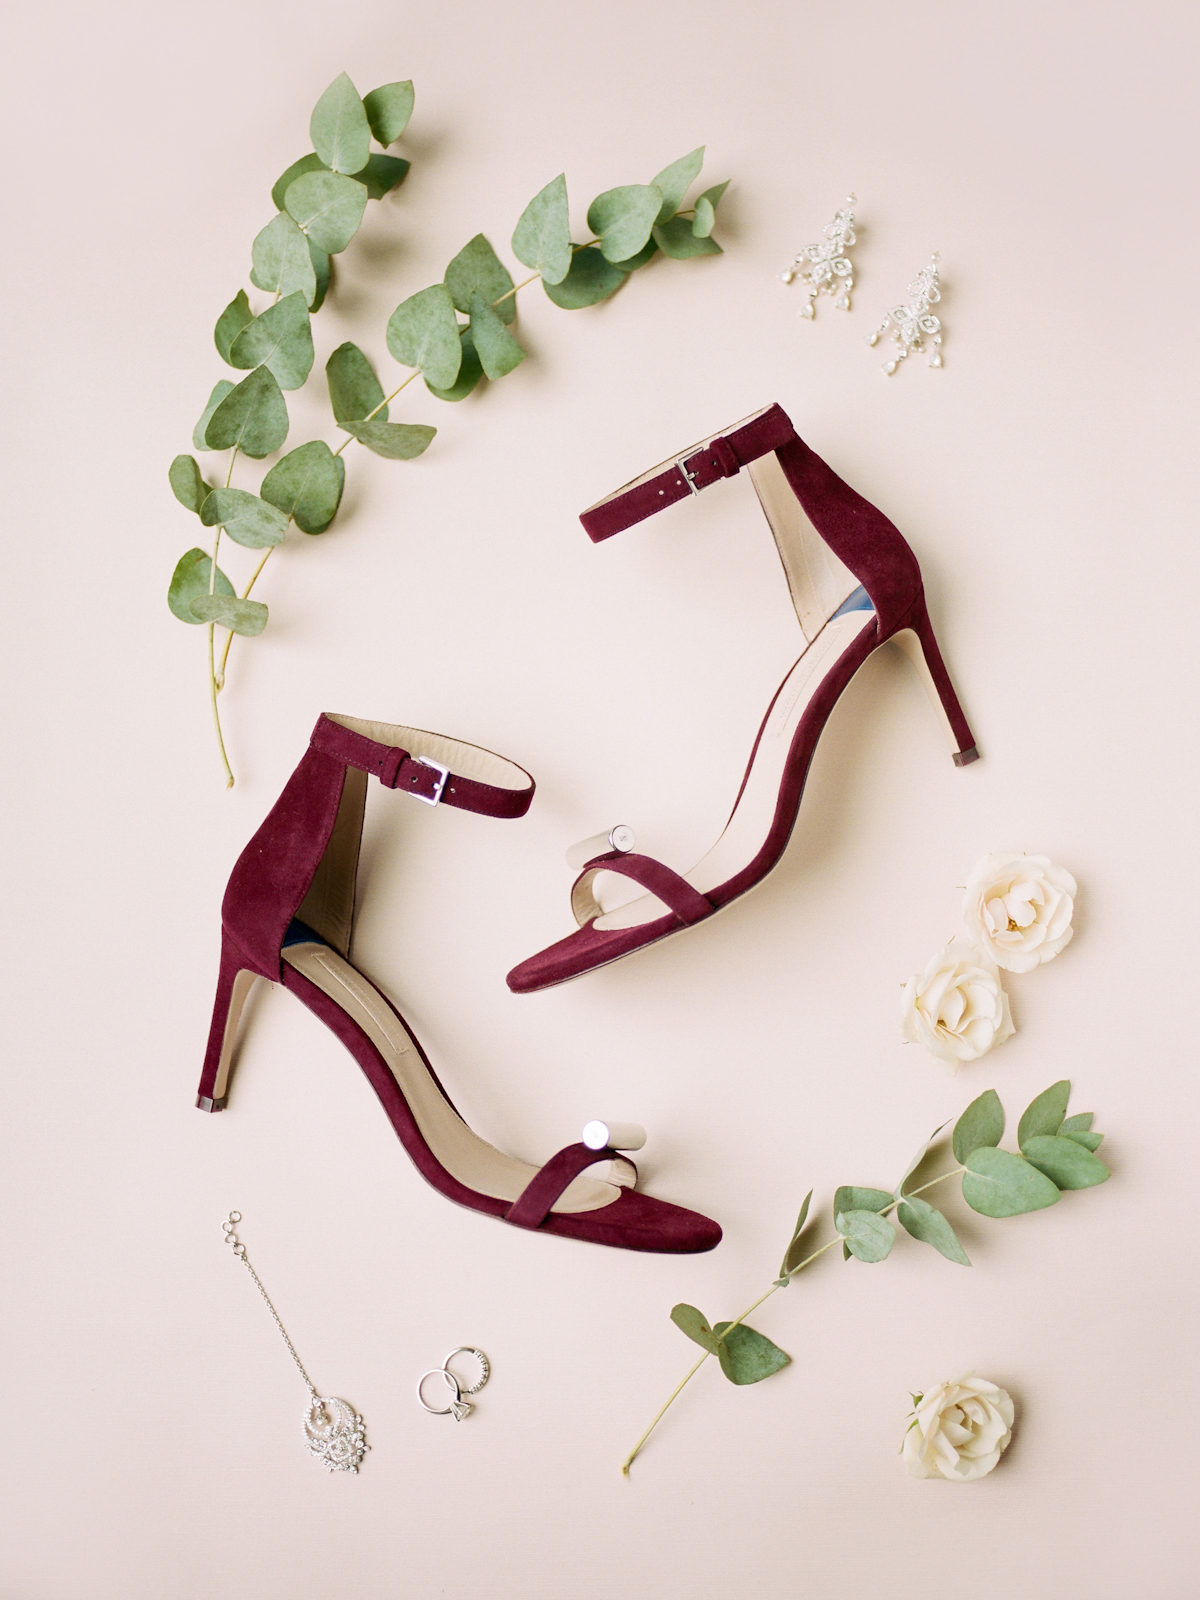 Red wedding shoes for Rainbow Room wedding